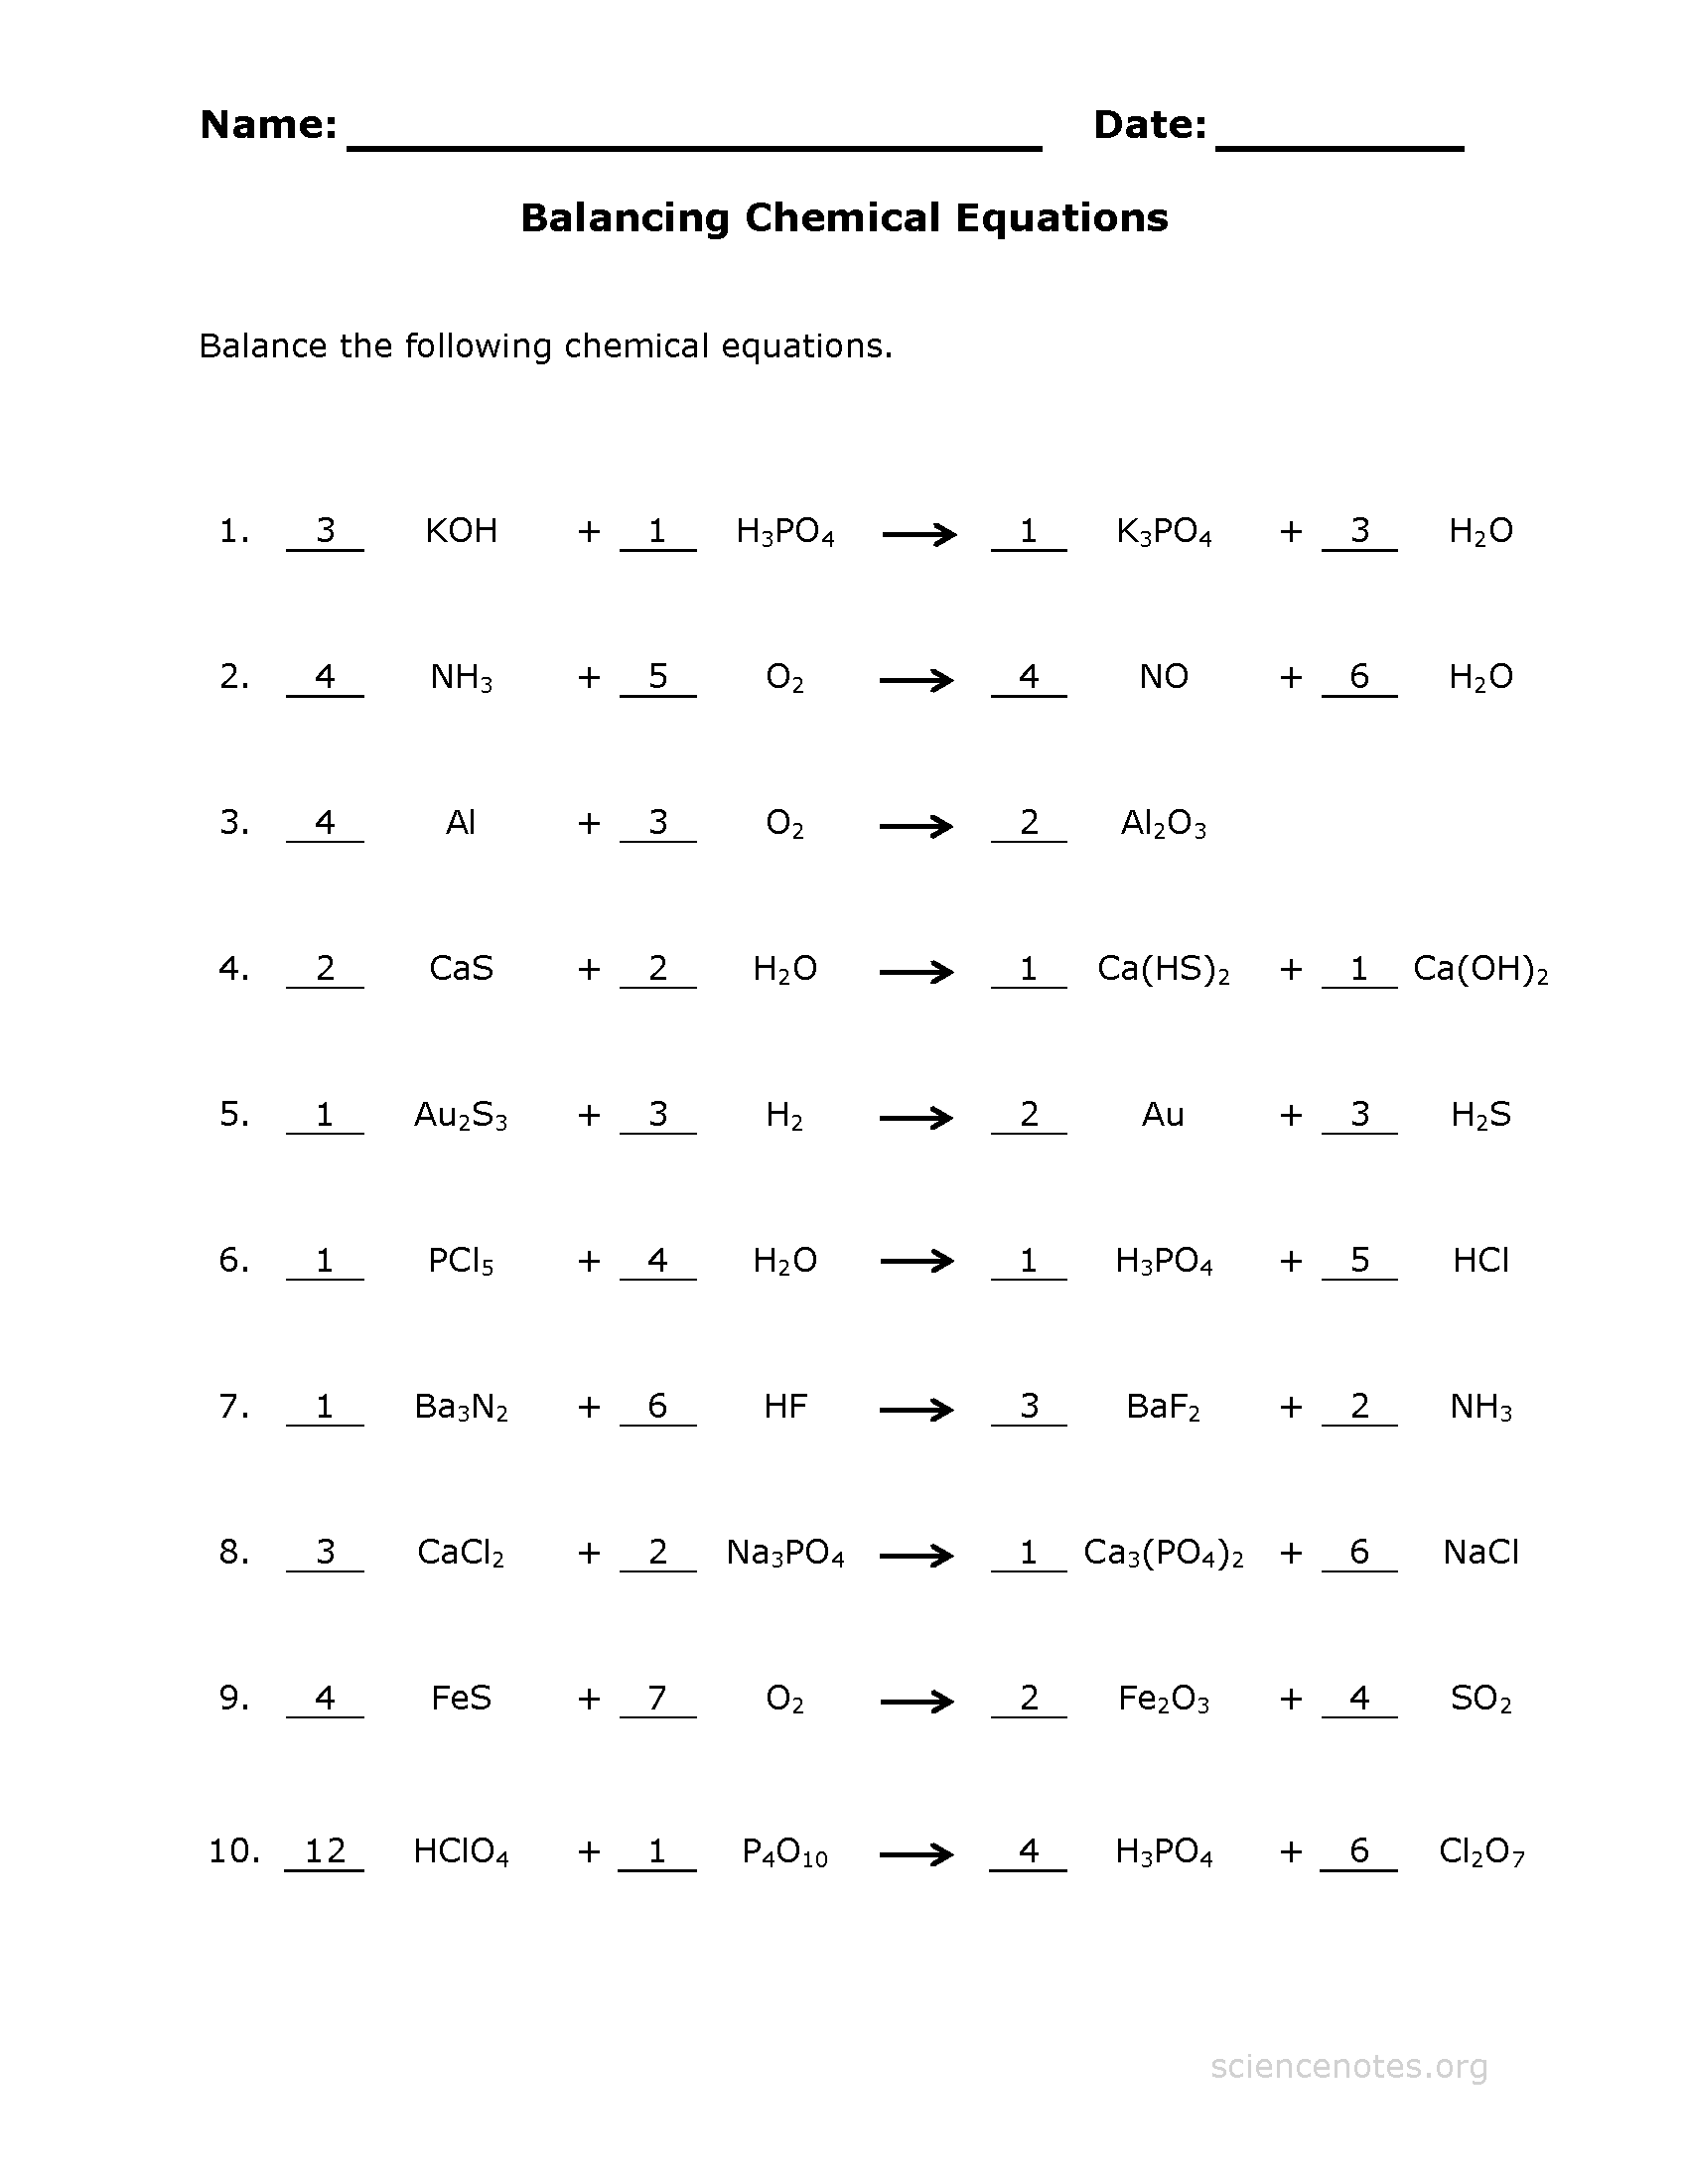 worksheet Equation Worksheet balancing chemical equations practice sheet see the completed check out our other equation worksheets